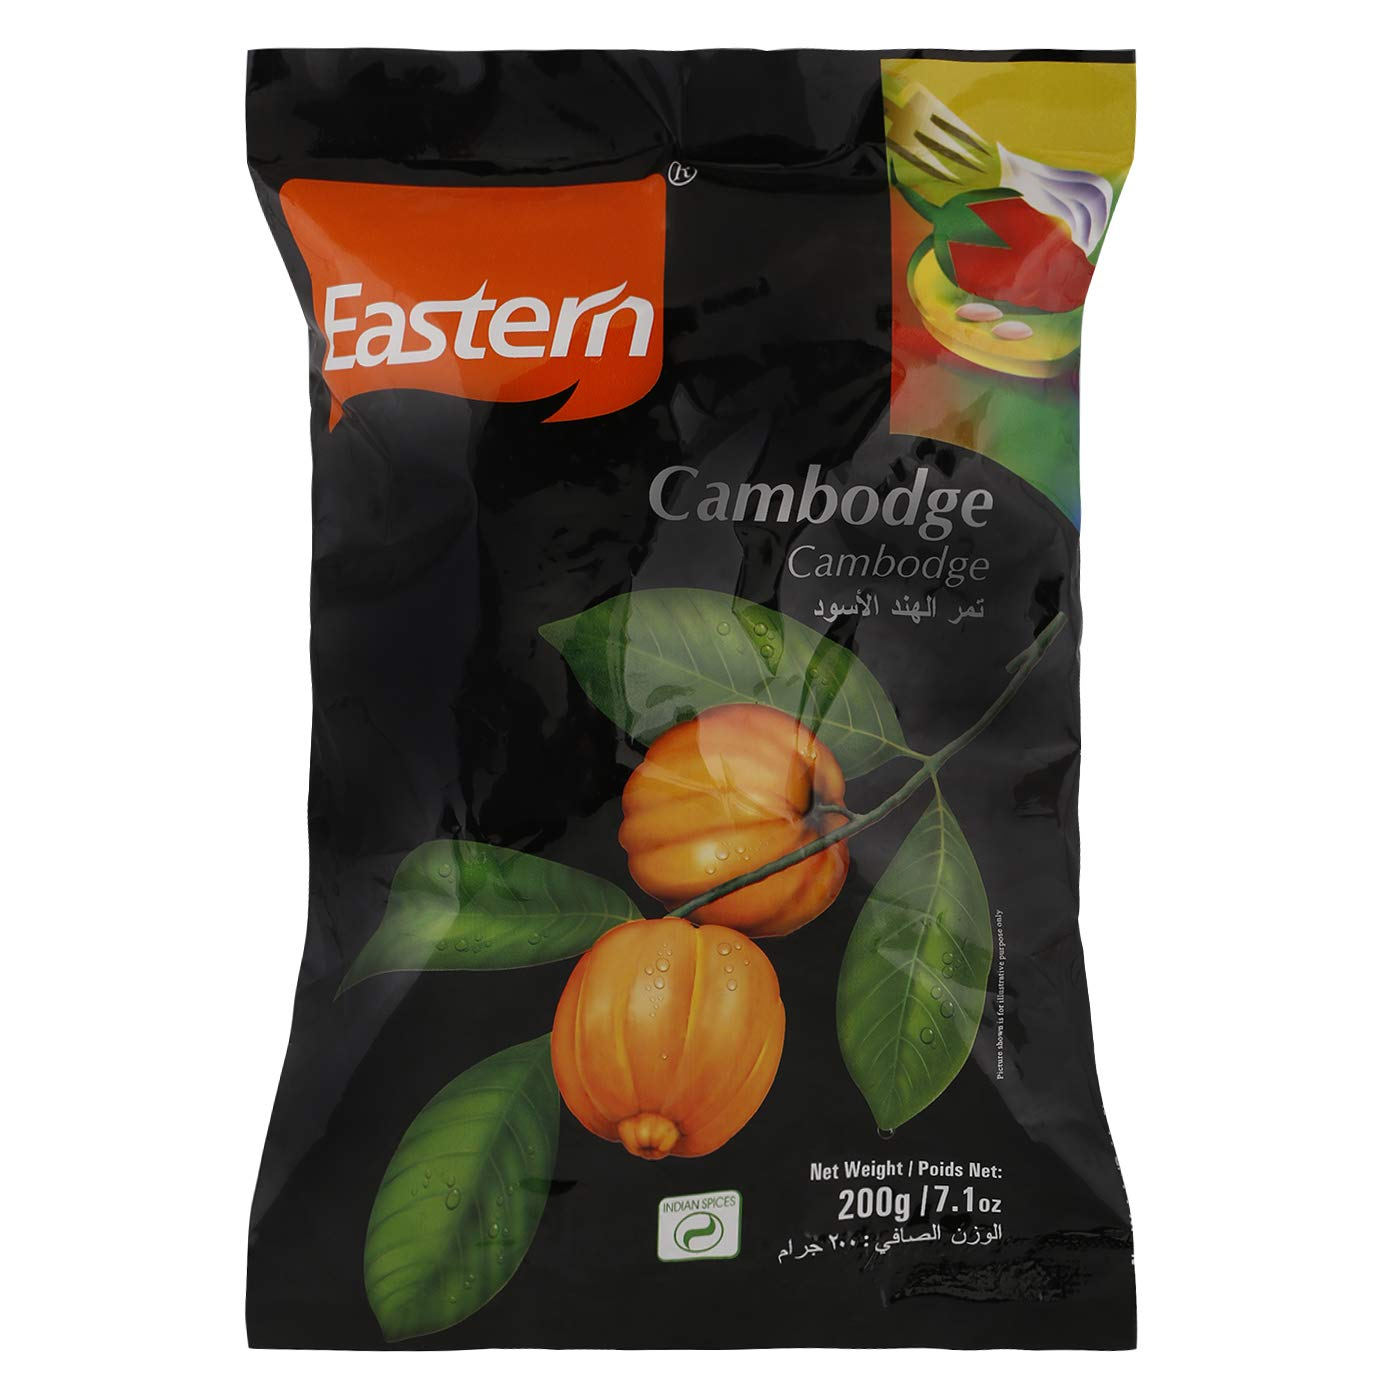 Eastern Limited time for free shipping Cambodge Kudam Puli Limited price 200 Gms -